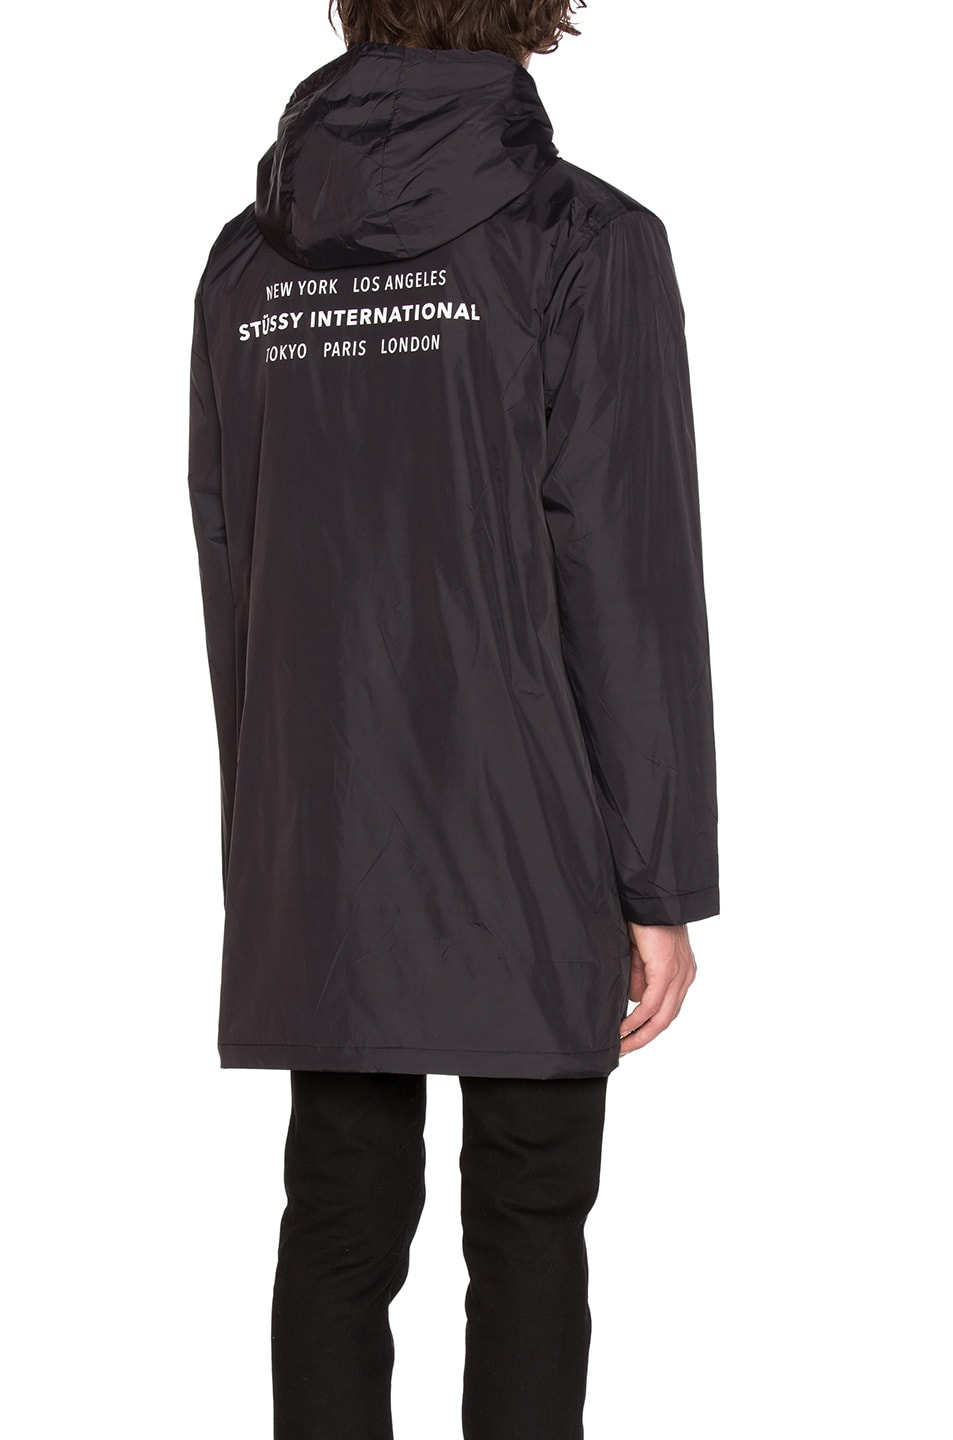 Image 1 of Stussy Insulated Long Hooded Coach Jacket in Black